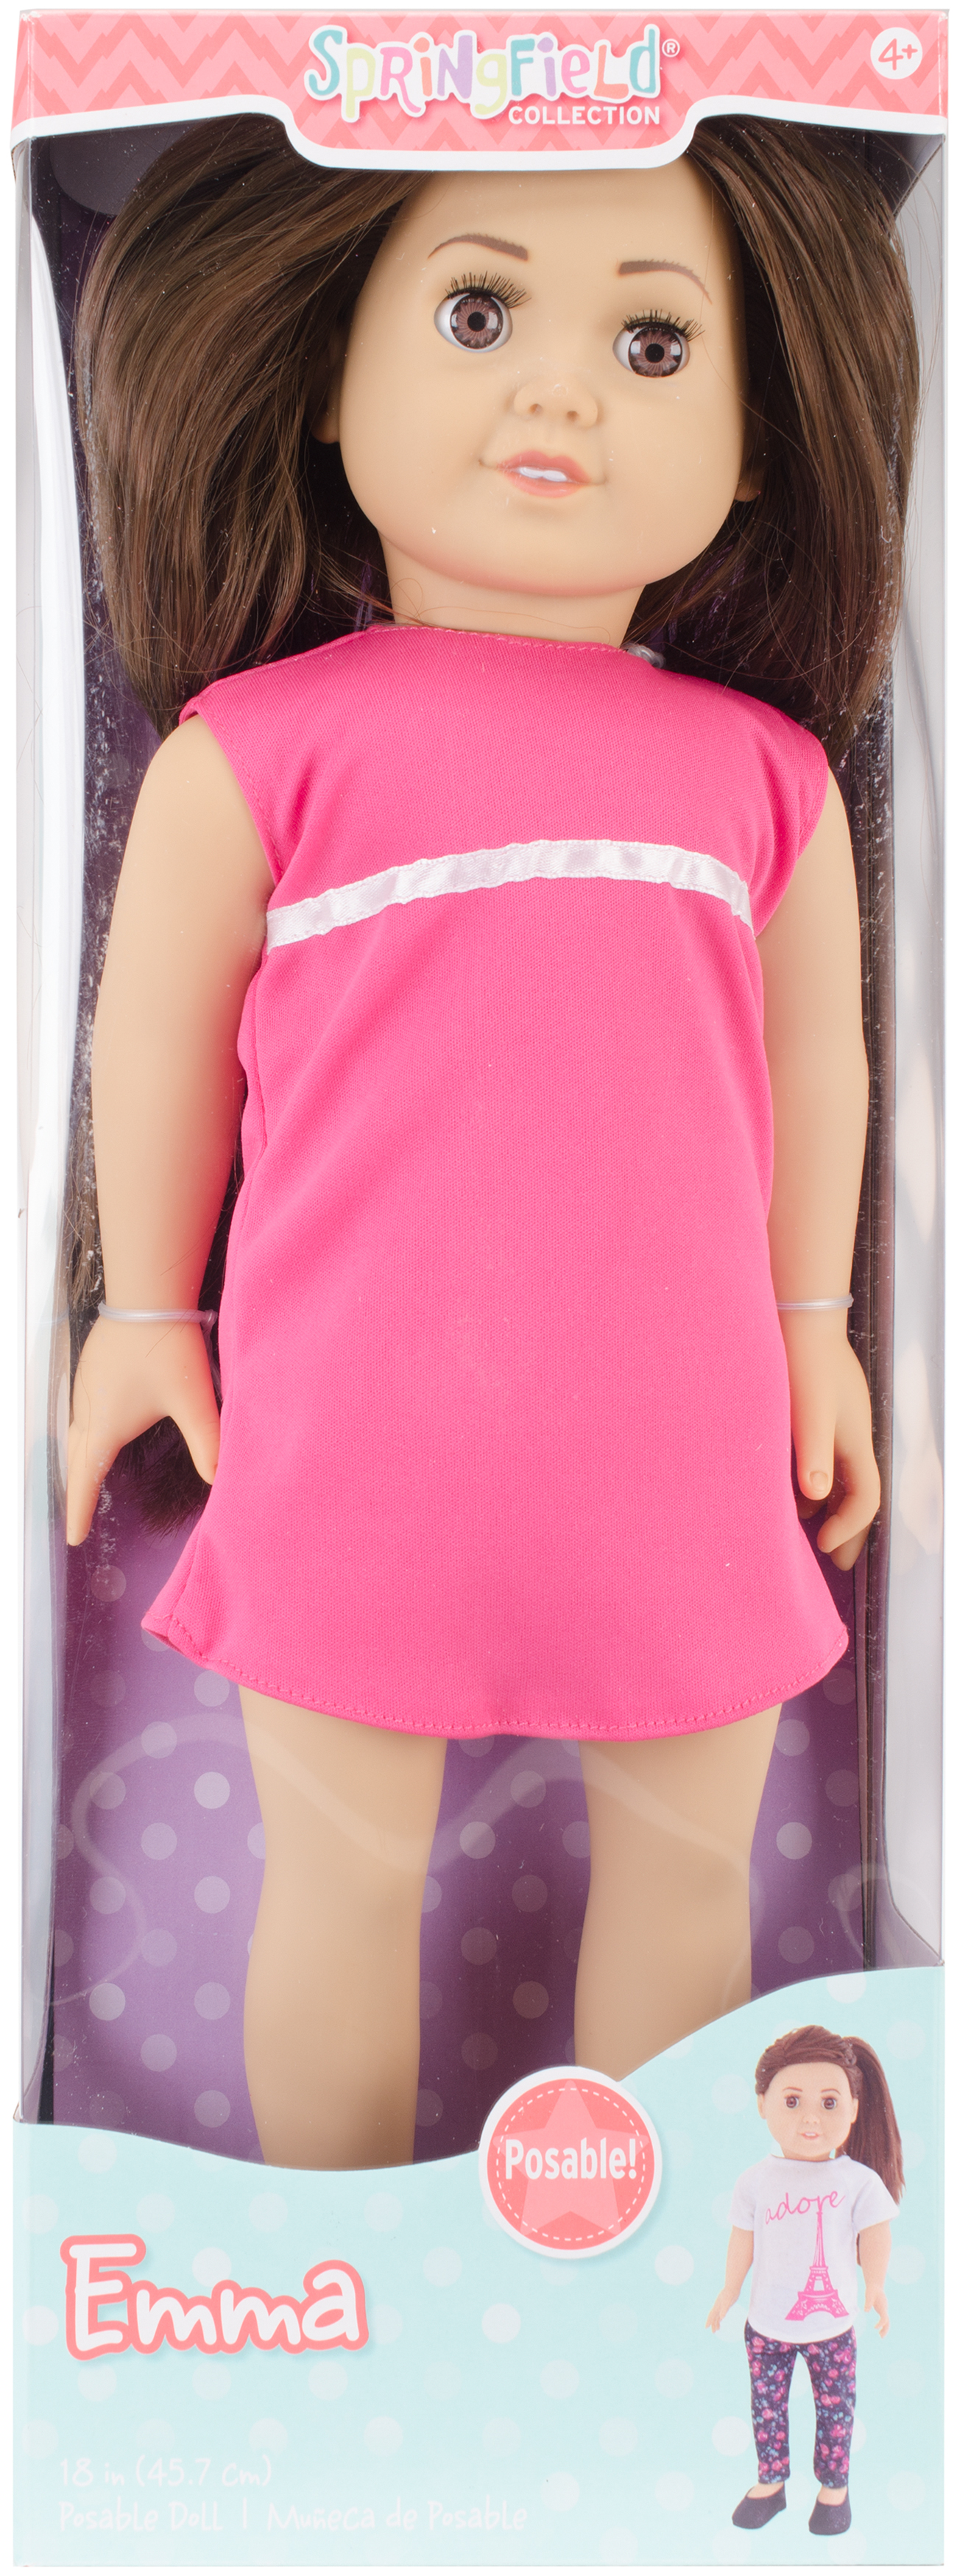 Fibre Craft Springfield Collection Pre-Stuffed Doll, Emma by Fibre Craft